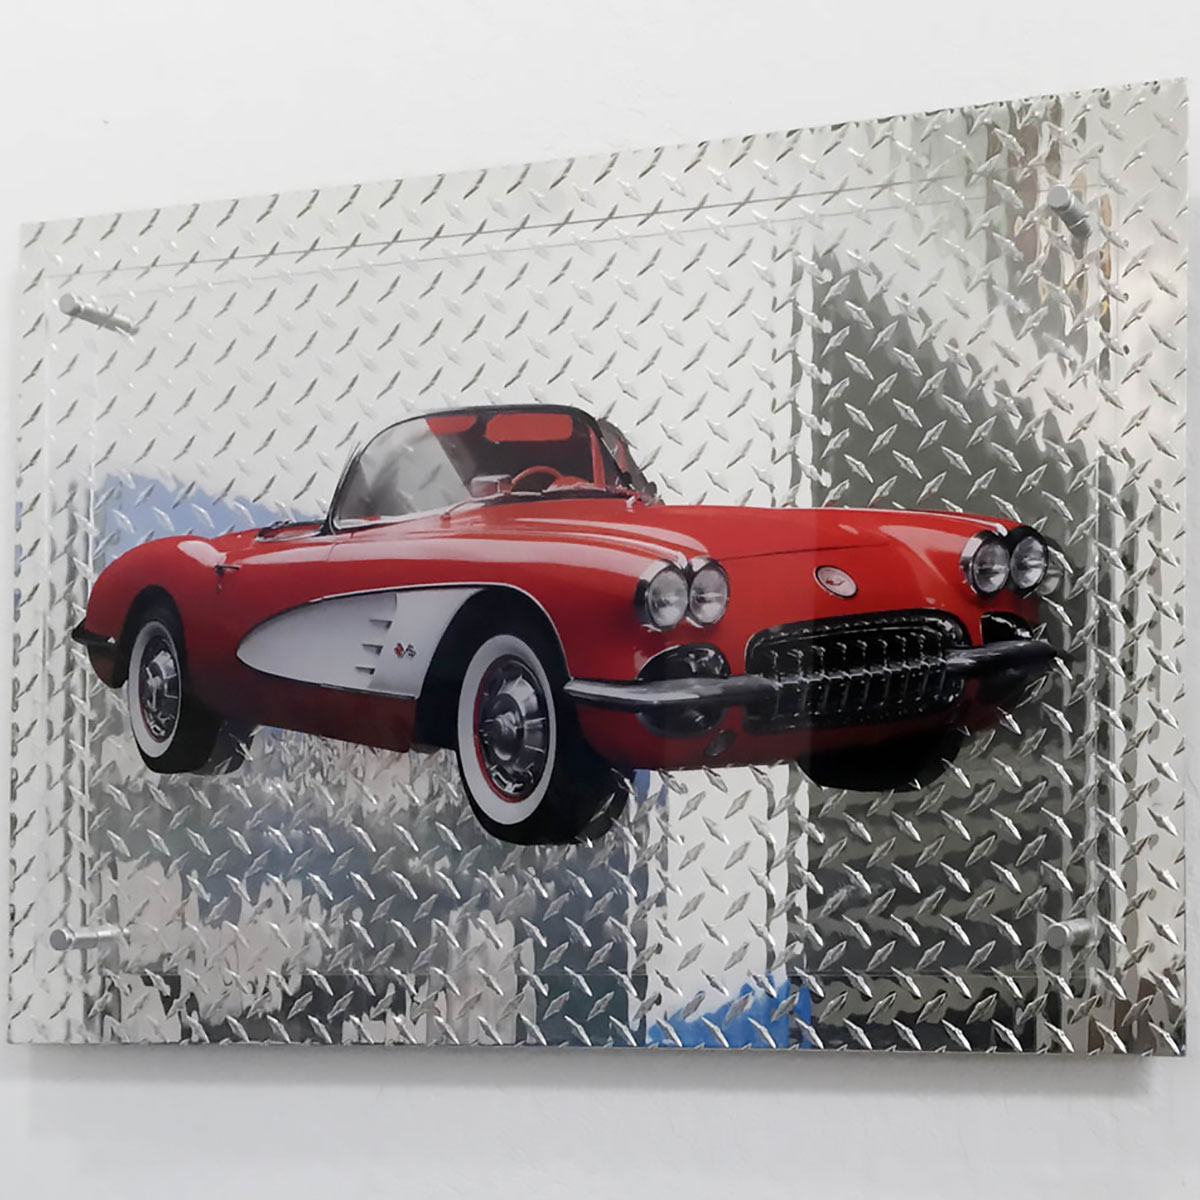 automobile printed direct to acrylic plexiglass mounted diamond plate metal